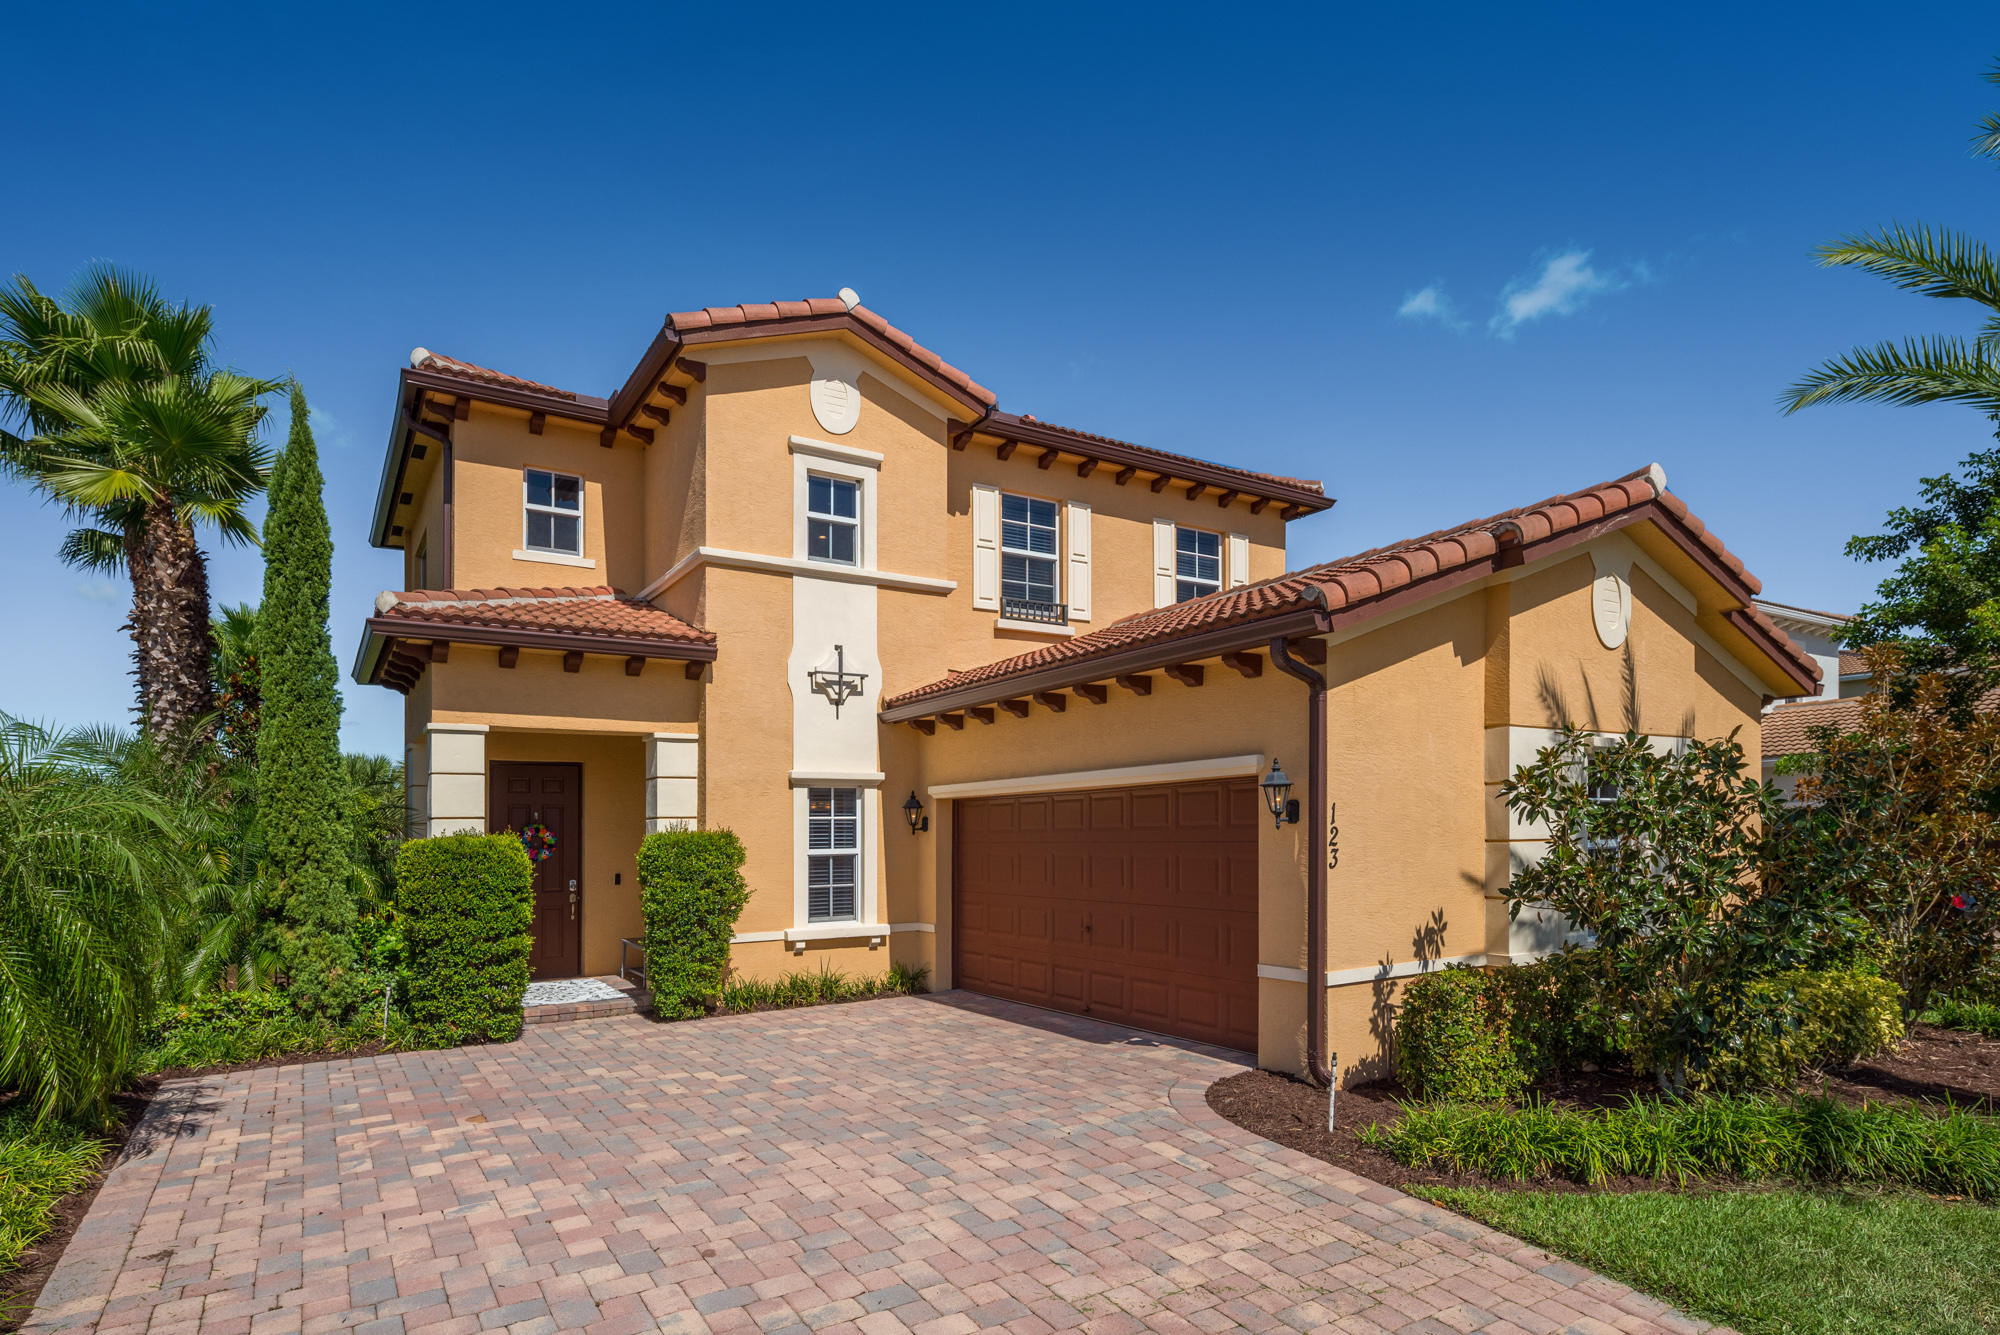 123 Behring Way  Jupiter FL 33458